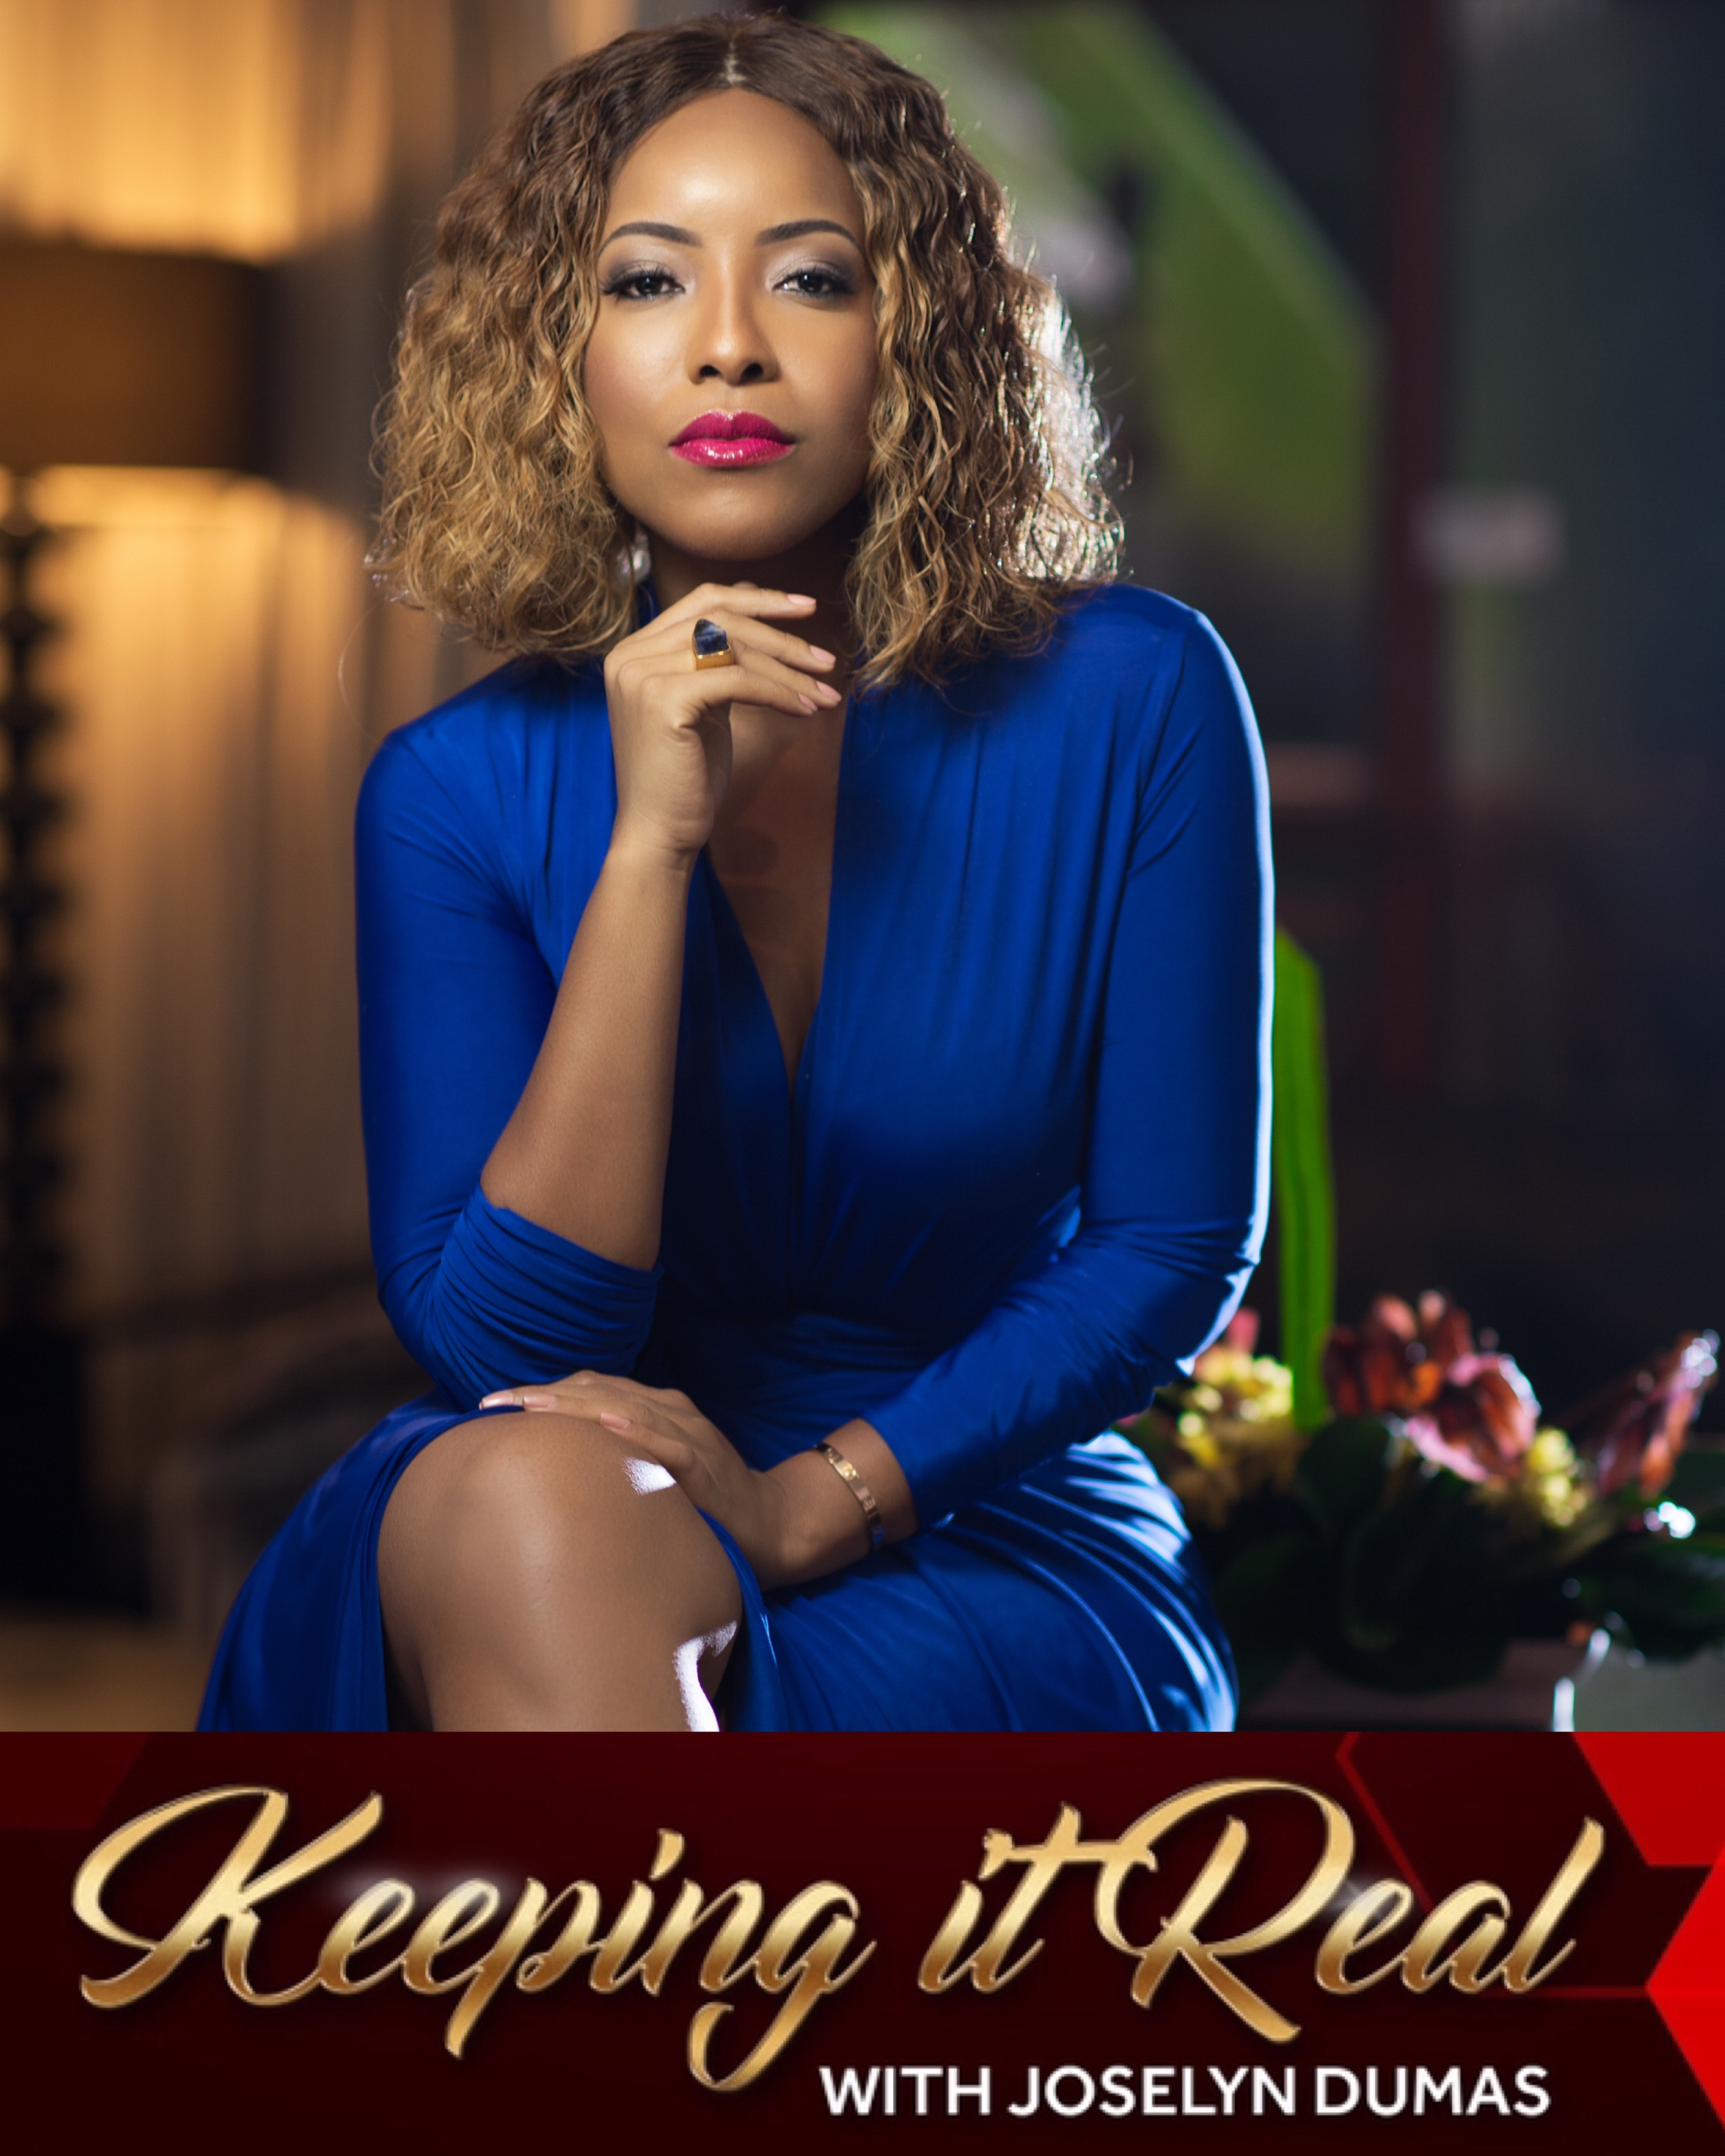 Keeping It Real With Joselyn Dumas